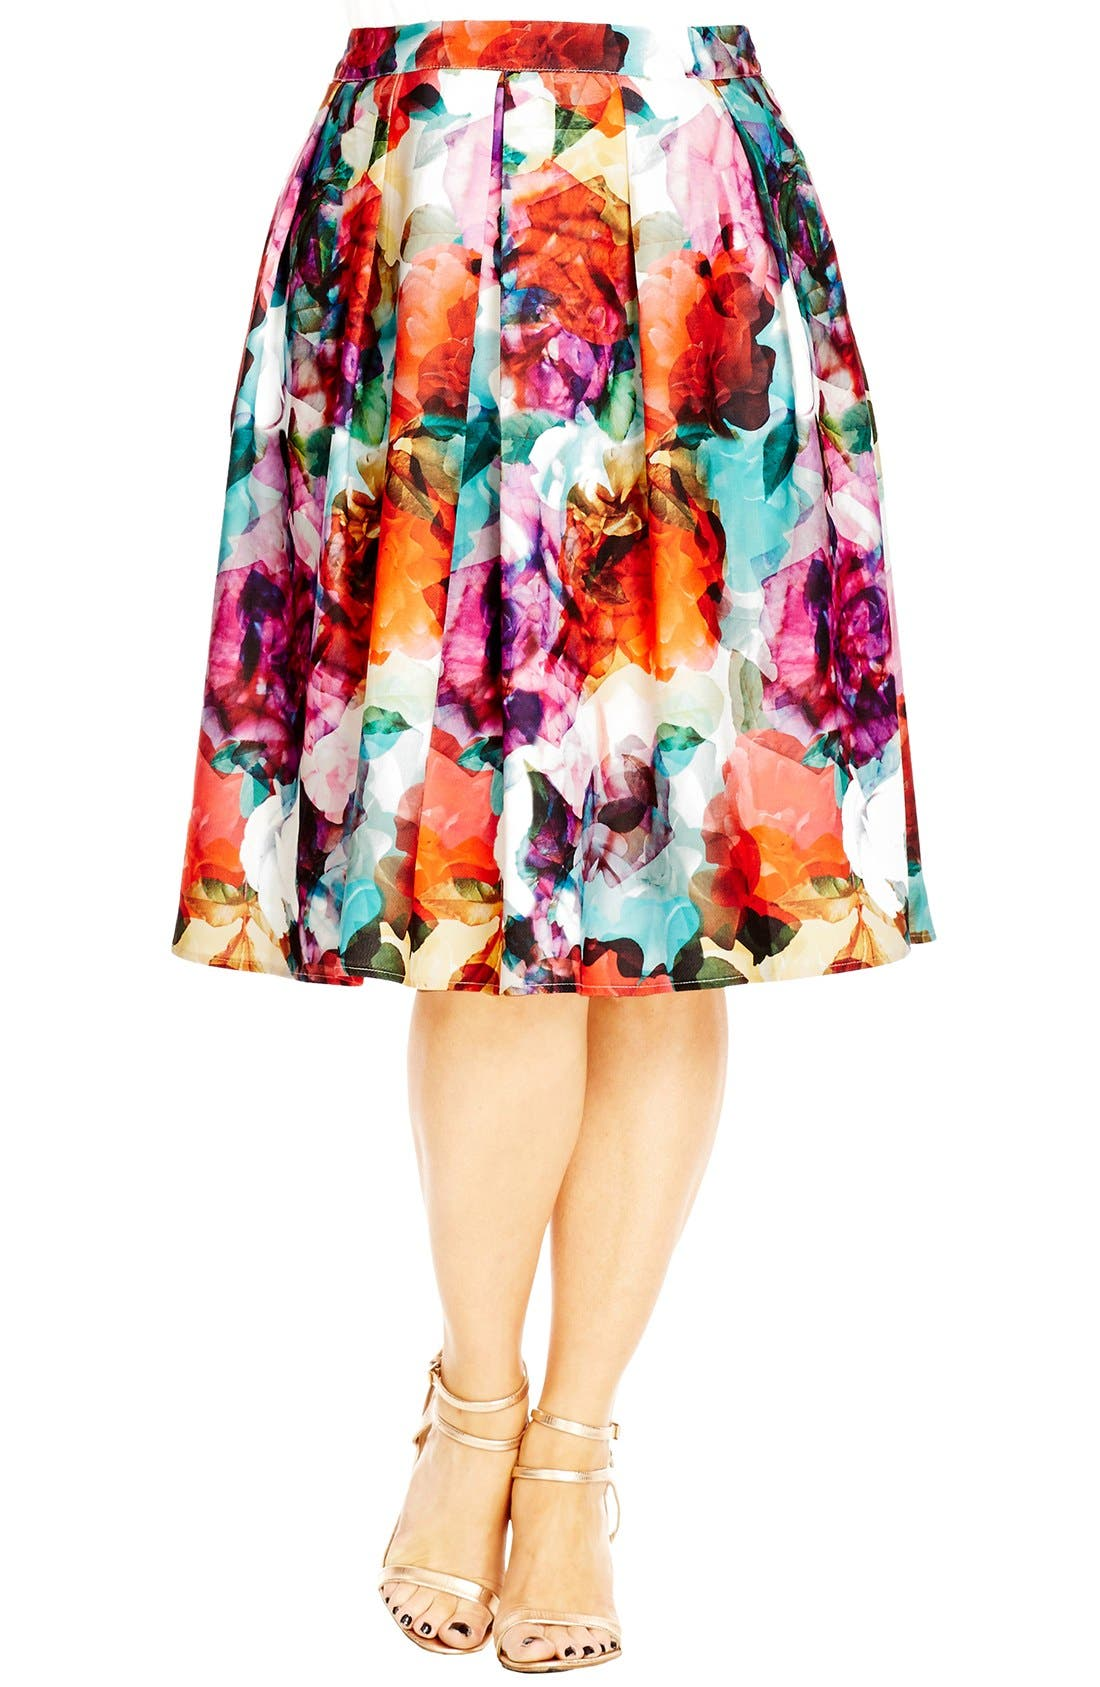 Alternate Image 1 Selected - City Chic 'Bright Pop' Floral Print Pleat Skirt (Plus Size)